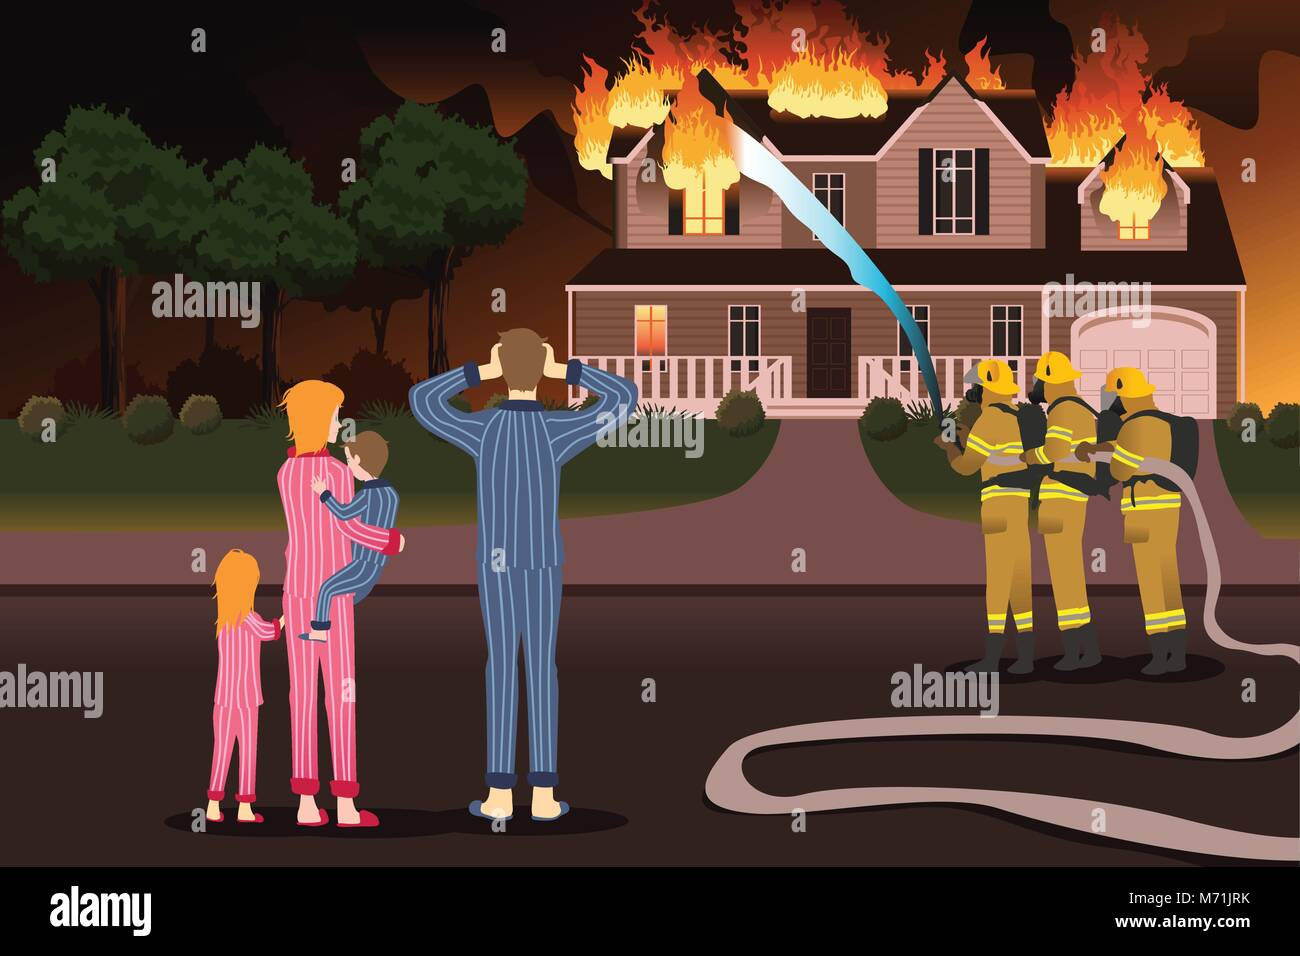 A vector description of Firemen Putting Out Fires of a Burning Home - Stock Vector